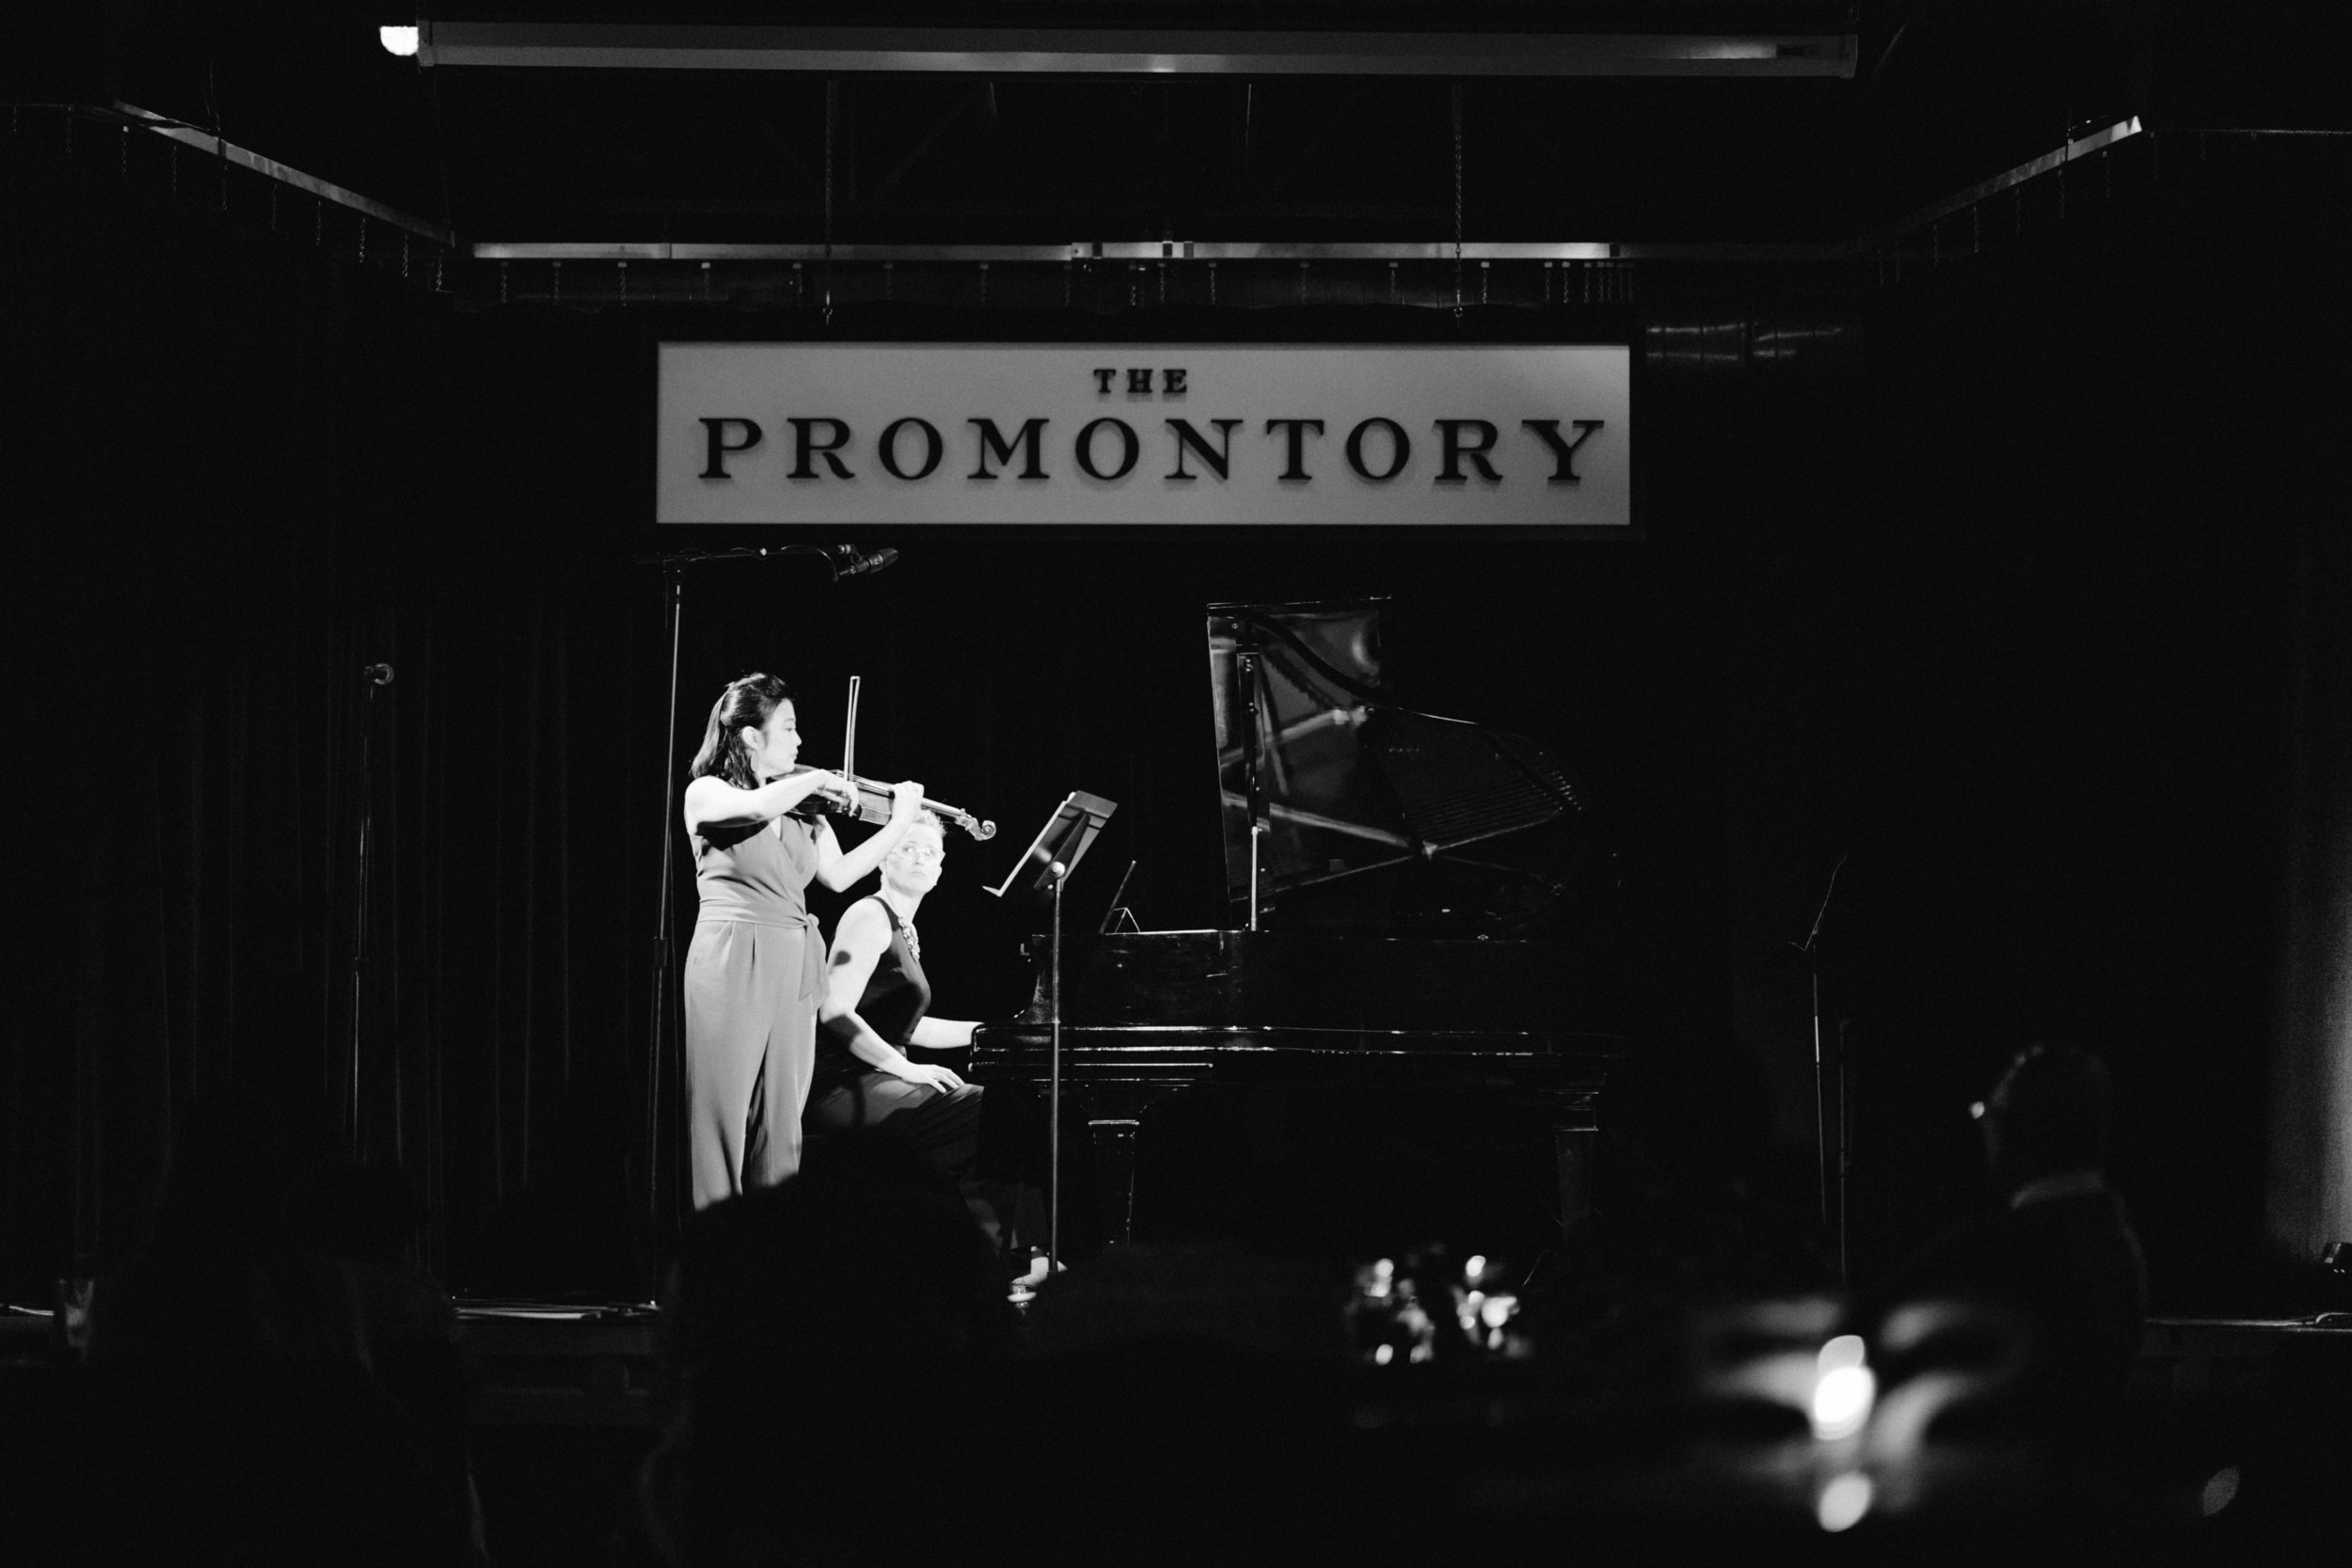 Bow & Hammer Deconstructed. The 1st of a 3-concert residency at the Promontory.